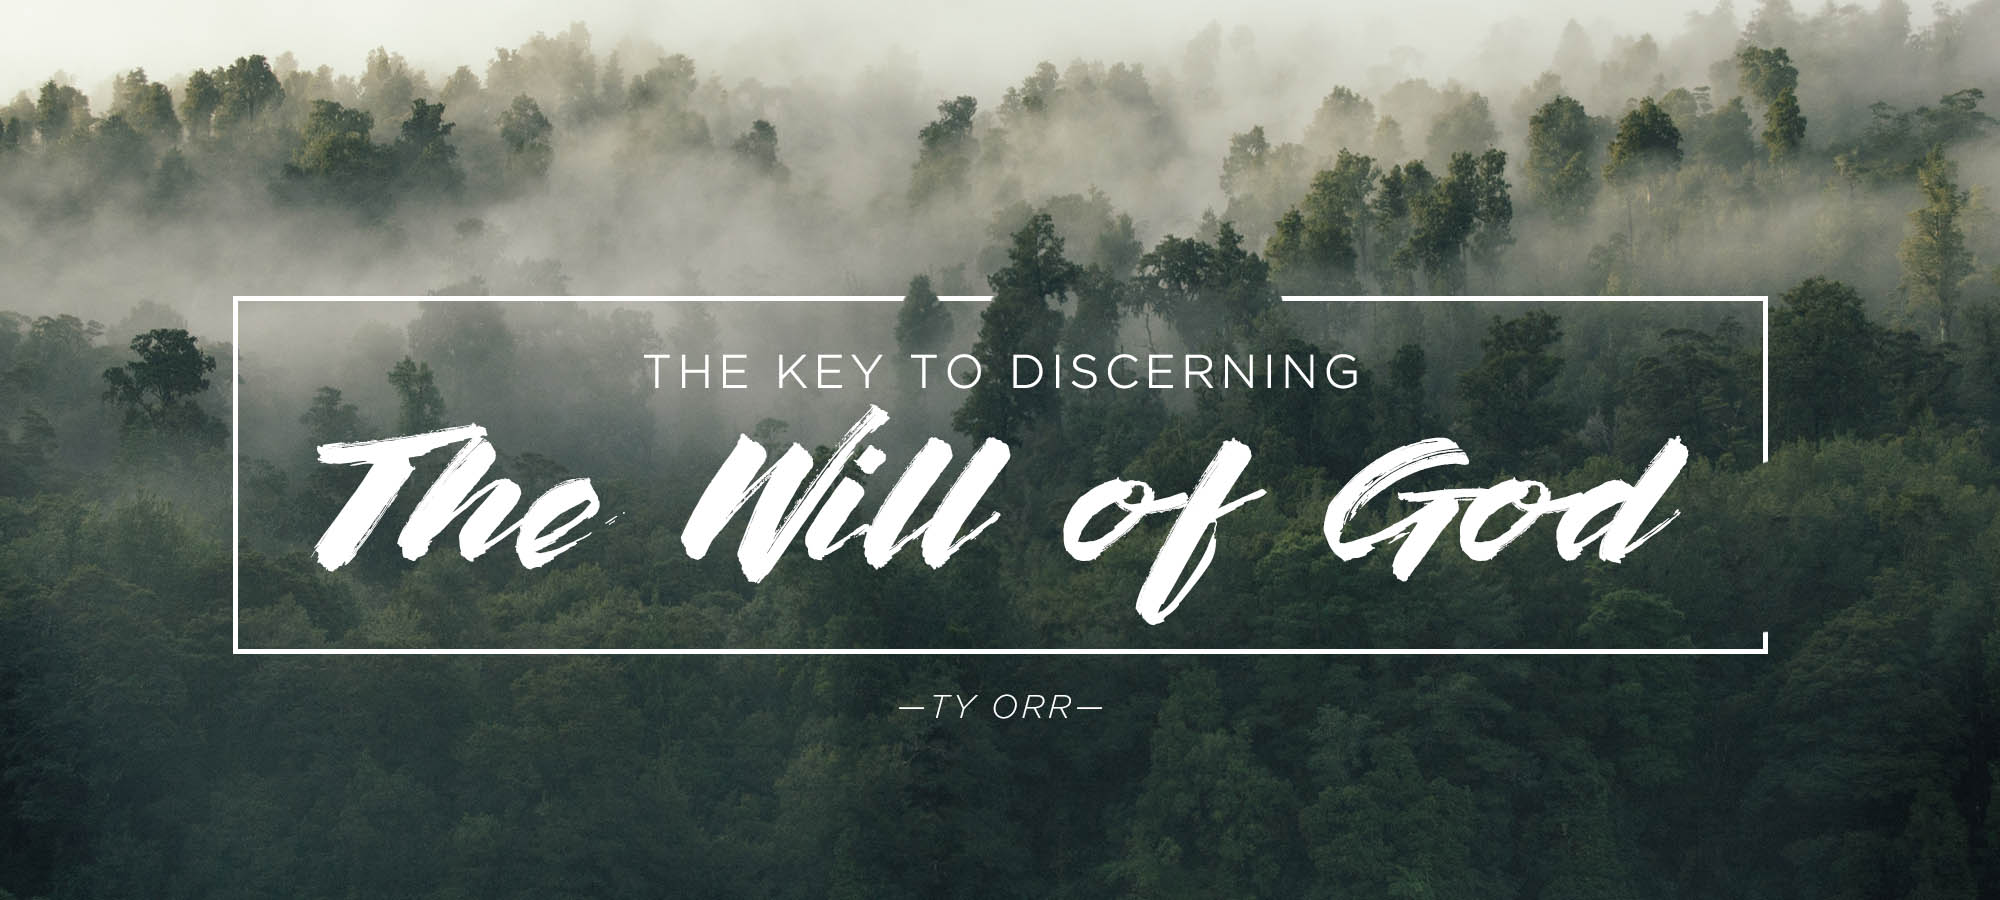 The Key to Discerning the Will of God